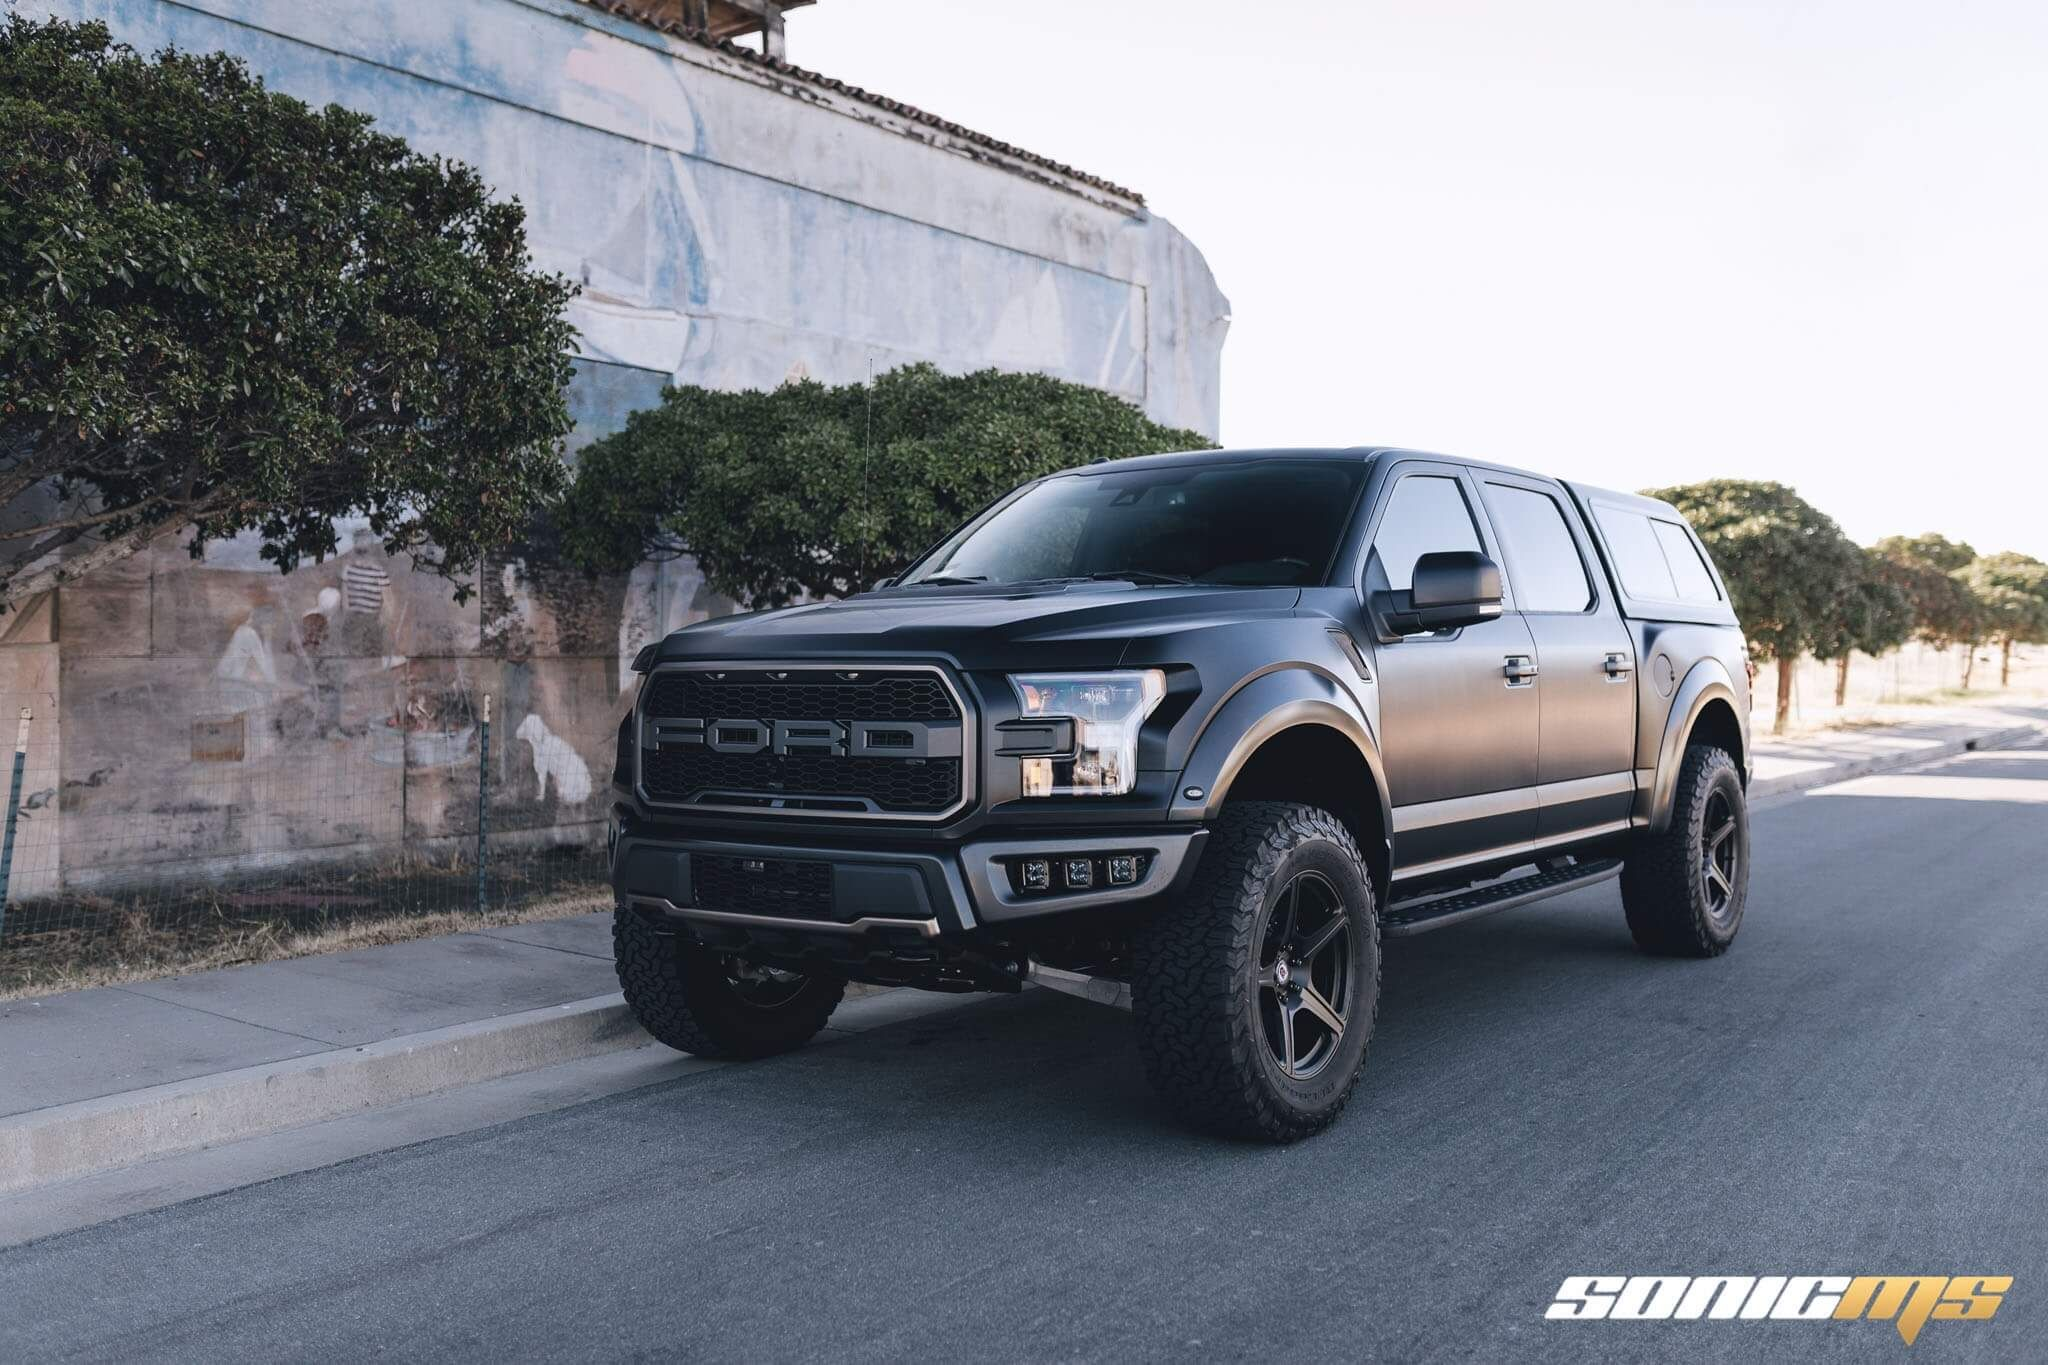 Ford F 150 Raptor With Tr105 In Satin Black Hre Performance Wheels Ford Raptor Ford F150 Black Ford Raptor